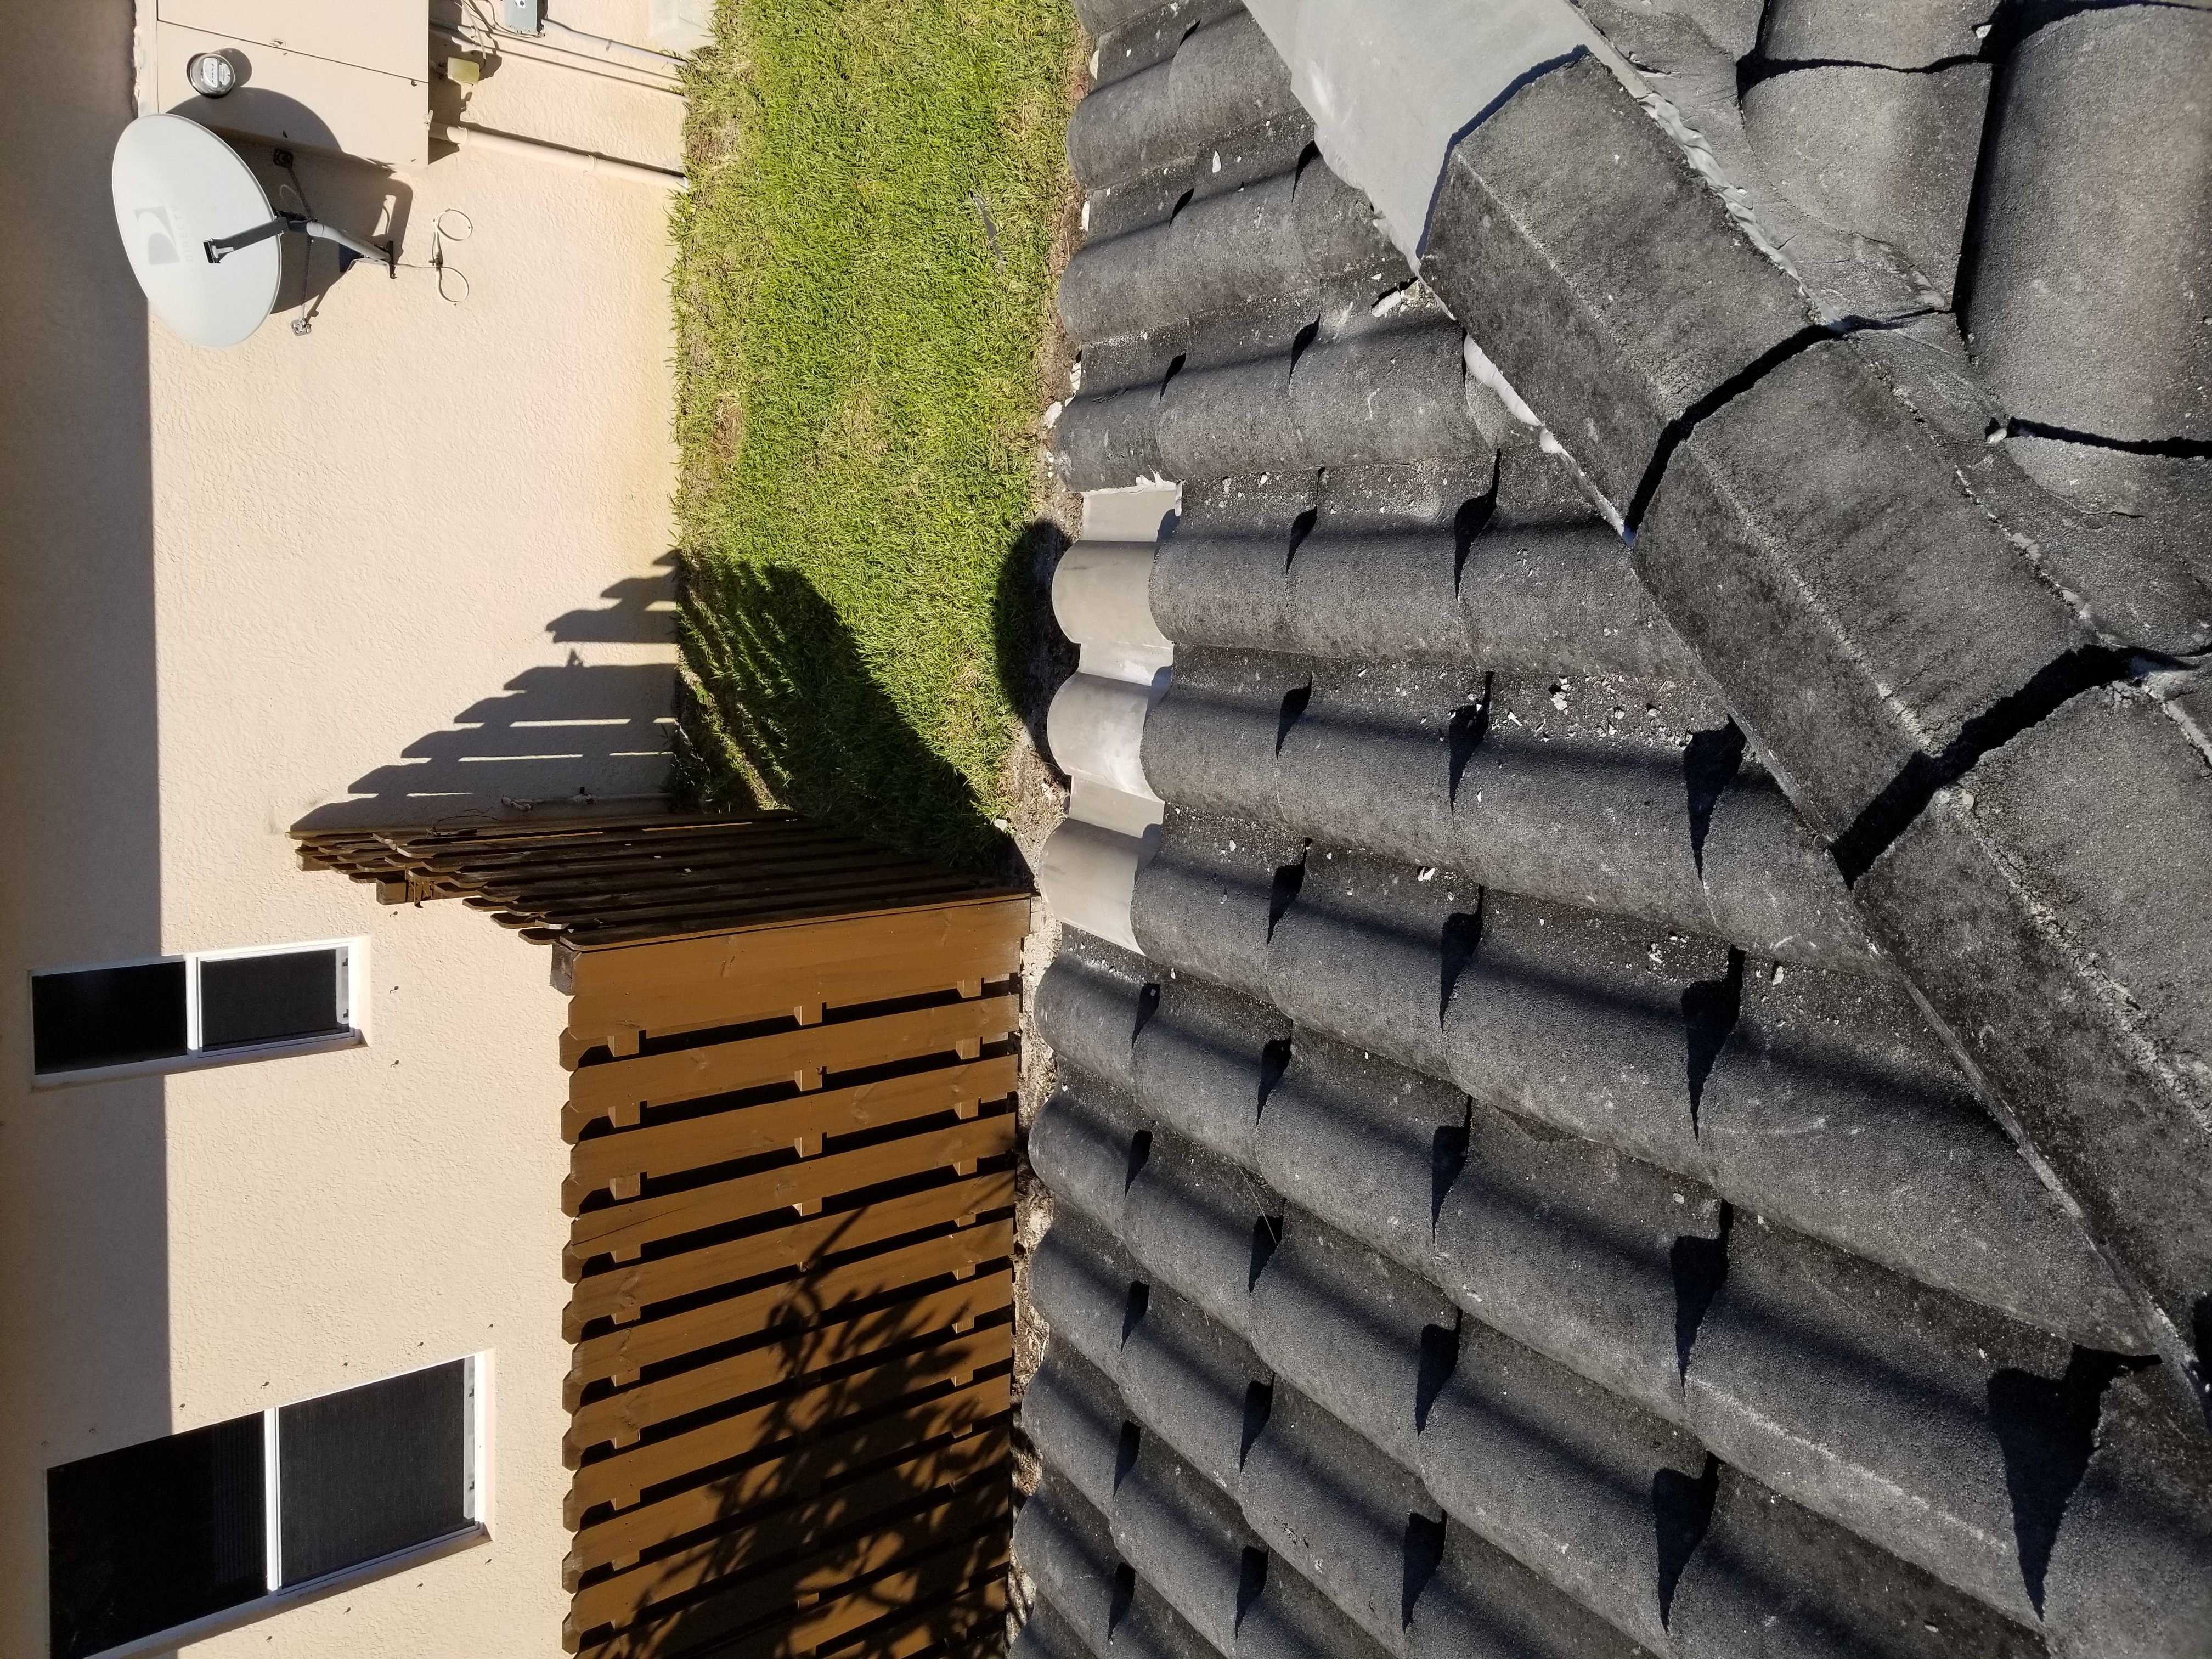 Tile Roof Repair Marco Island Gsd Construction Services Llc